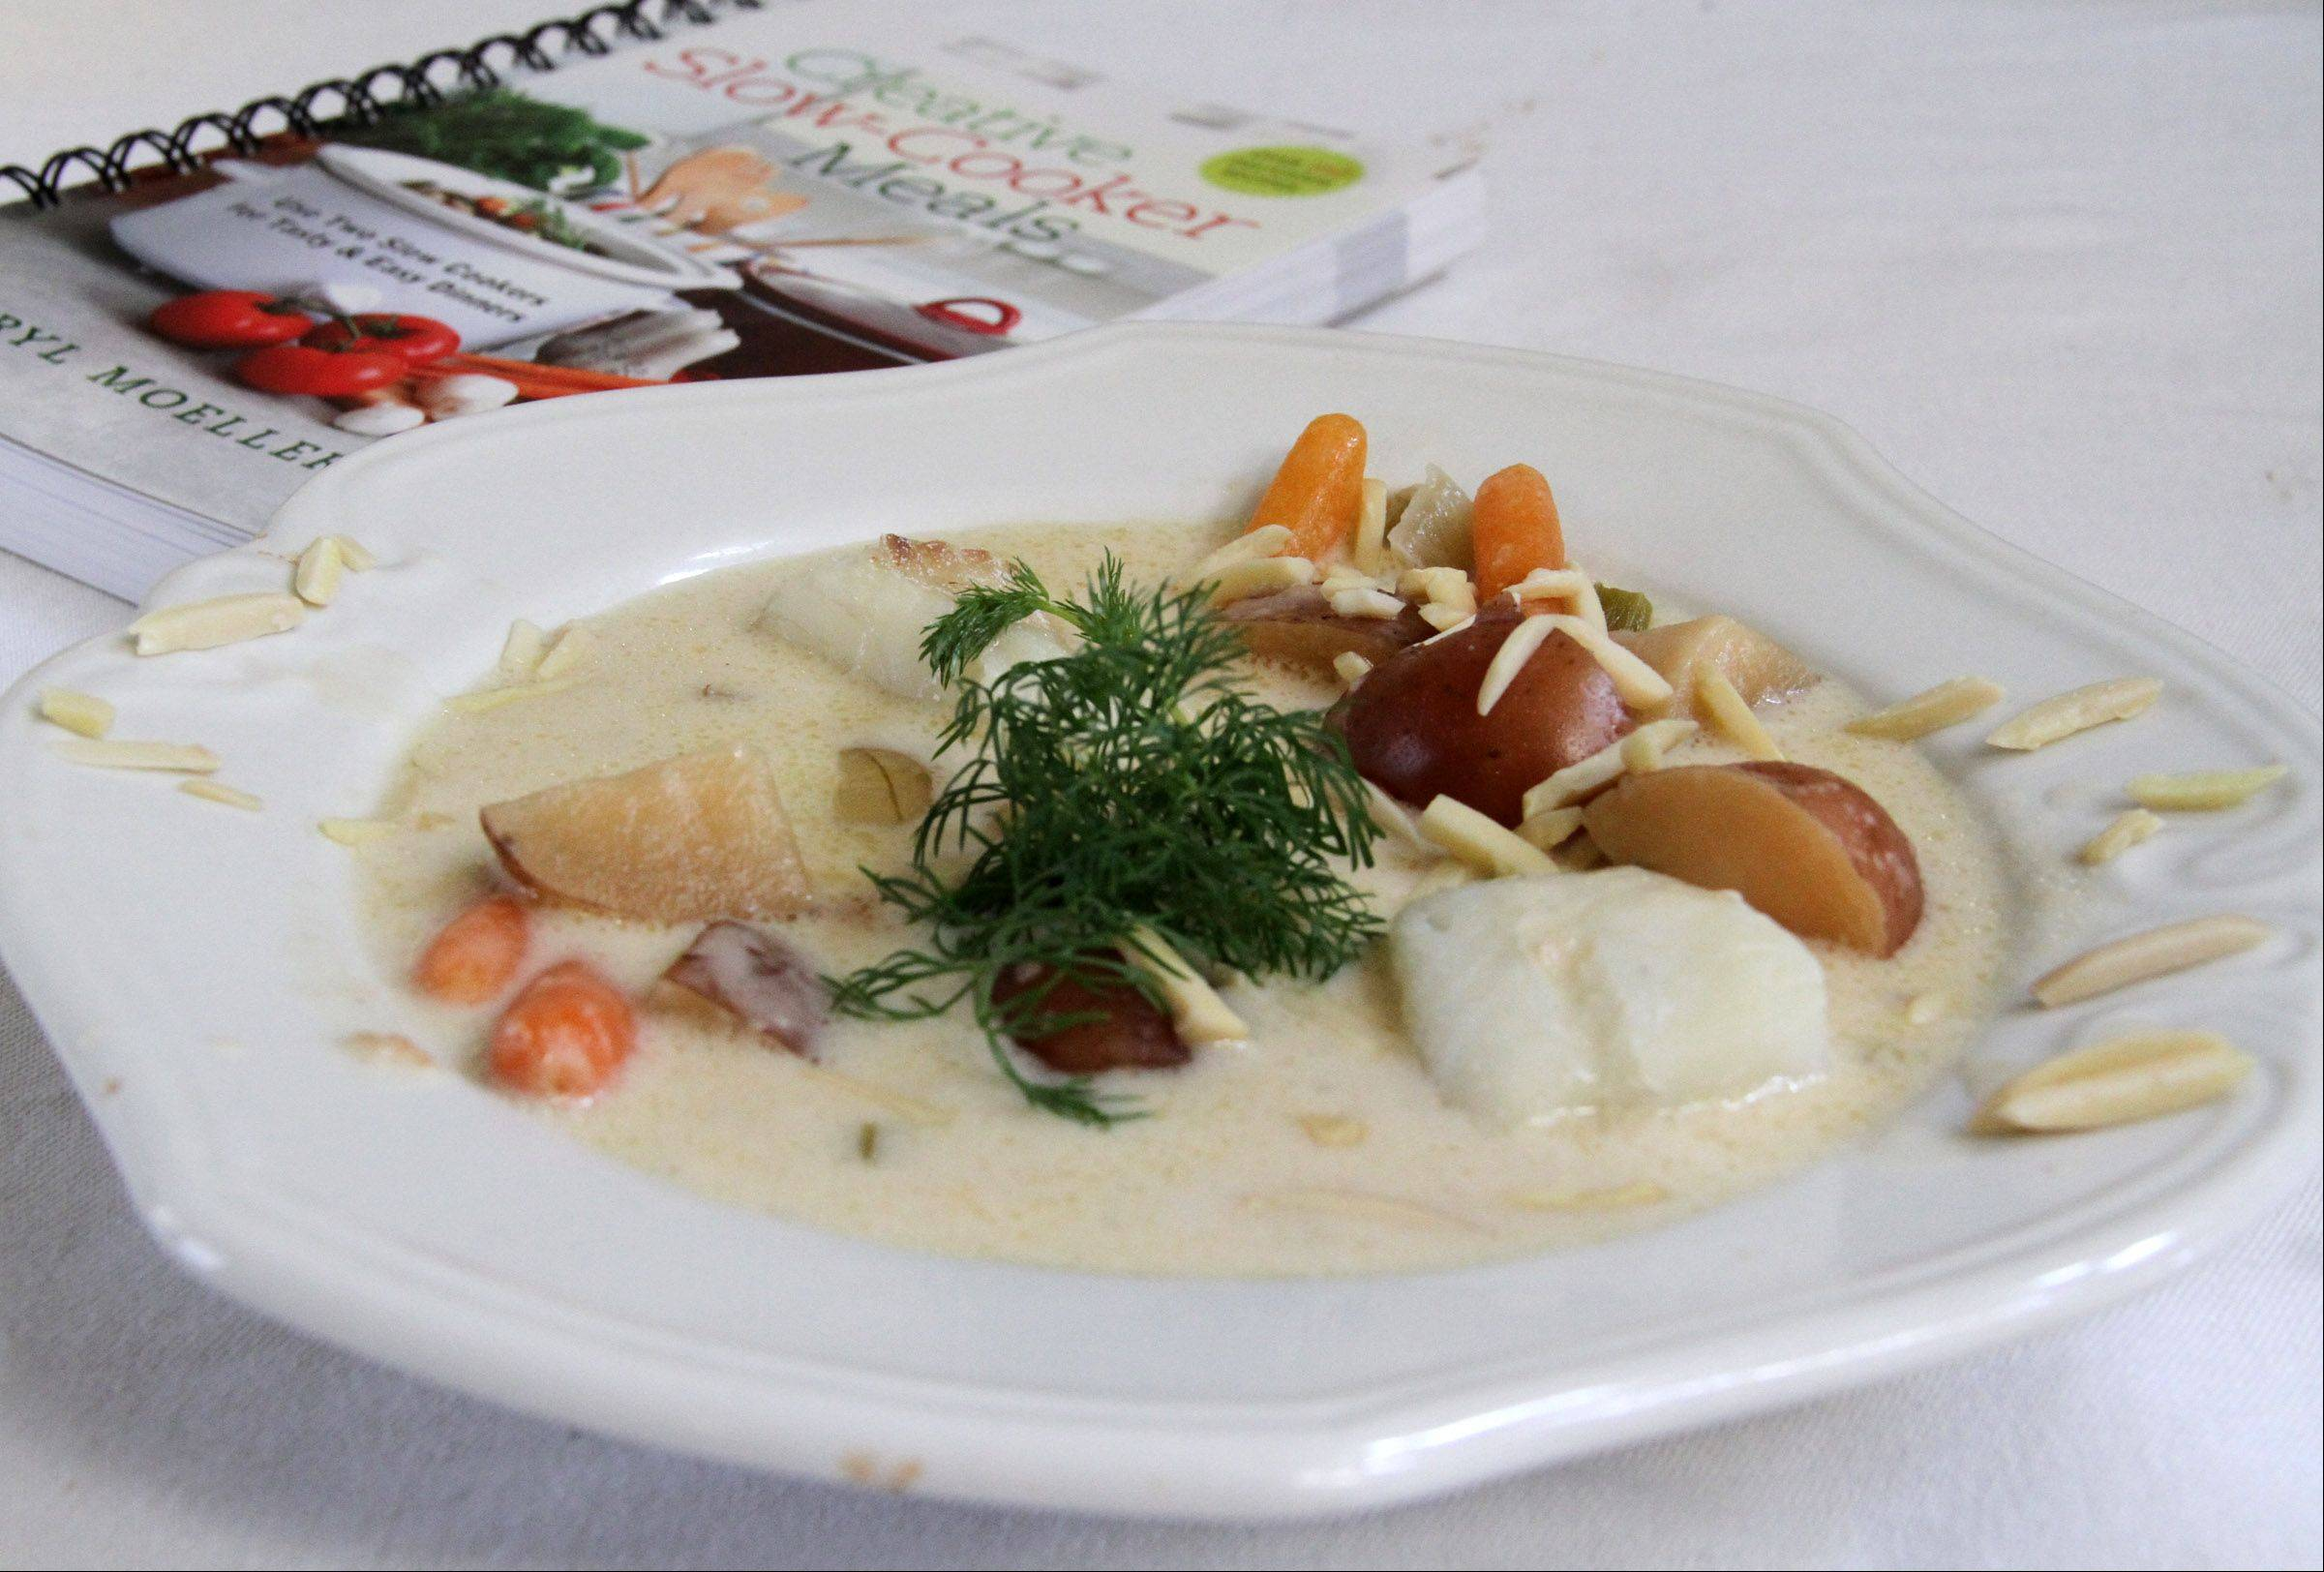 Cheryl Moeller cooks halibut chowder in a slow cooker.